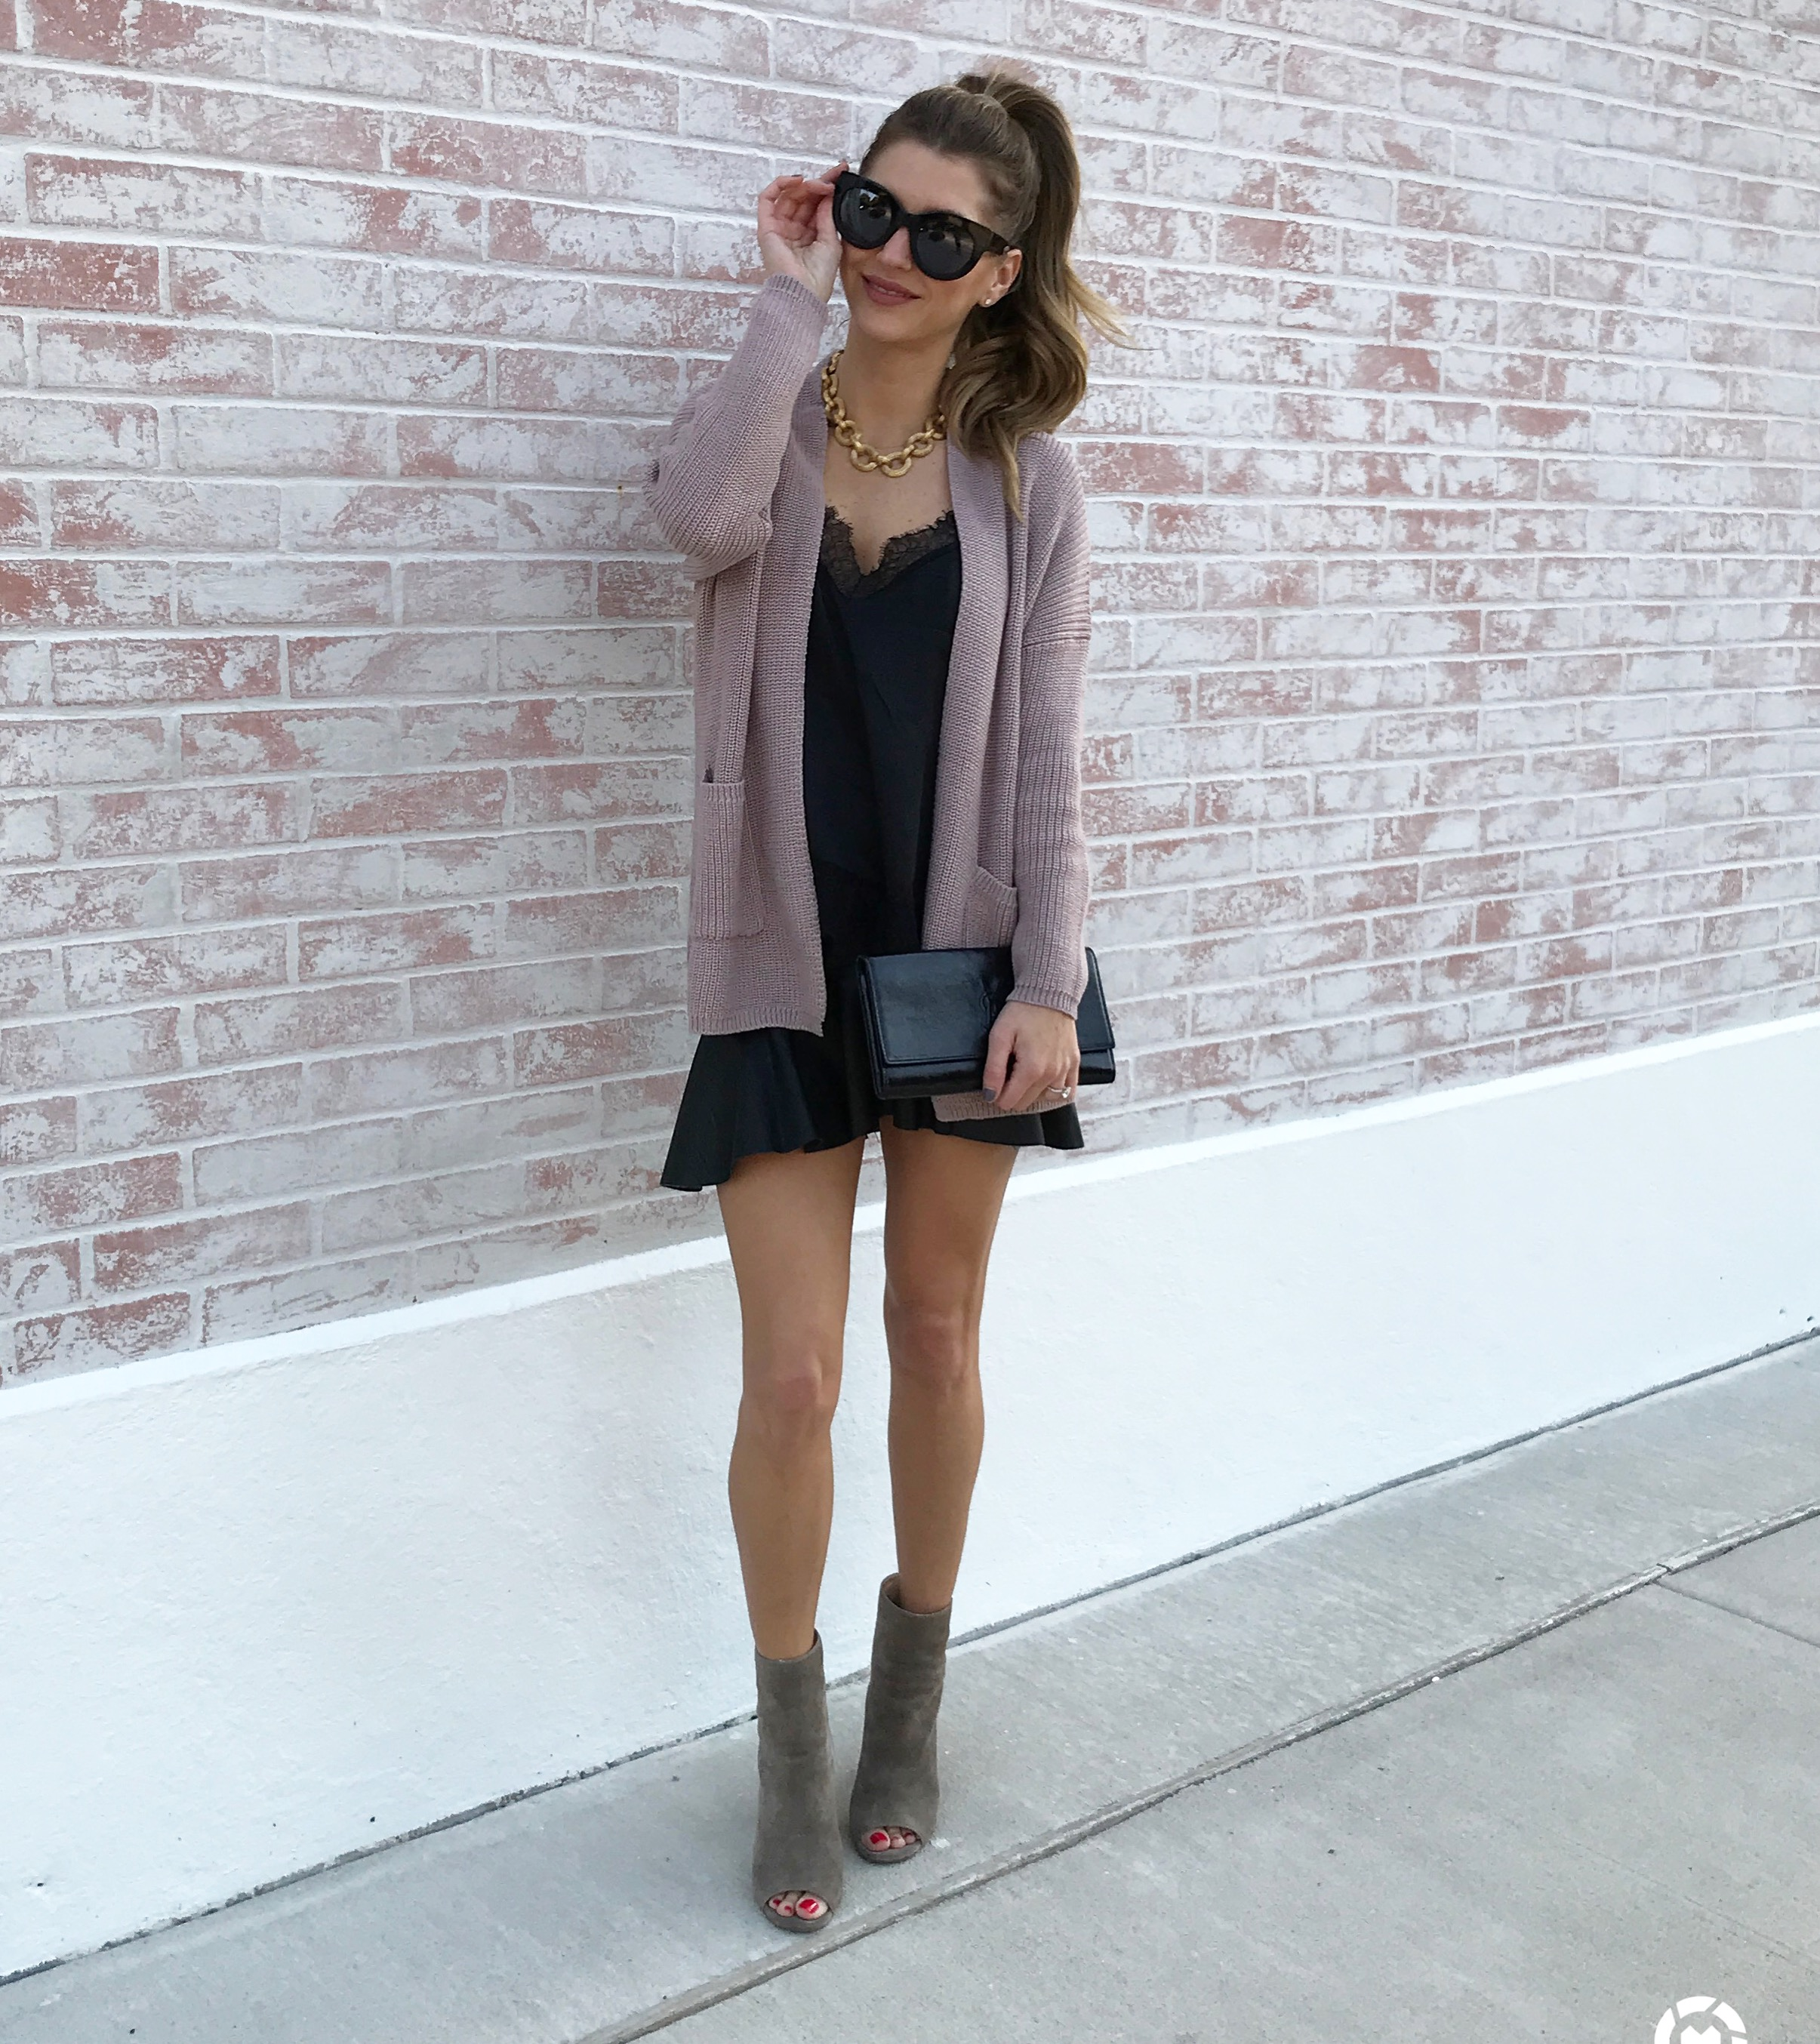 Digital marketing Influencer wearing Shop Pin kBlush cold shoulder sweater